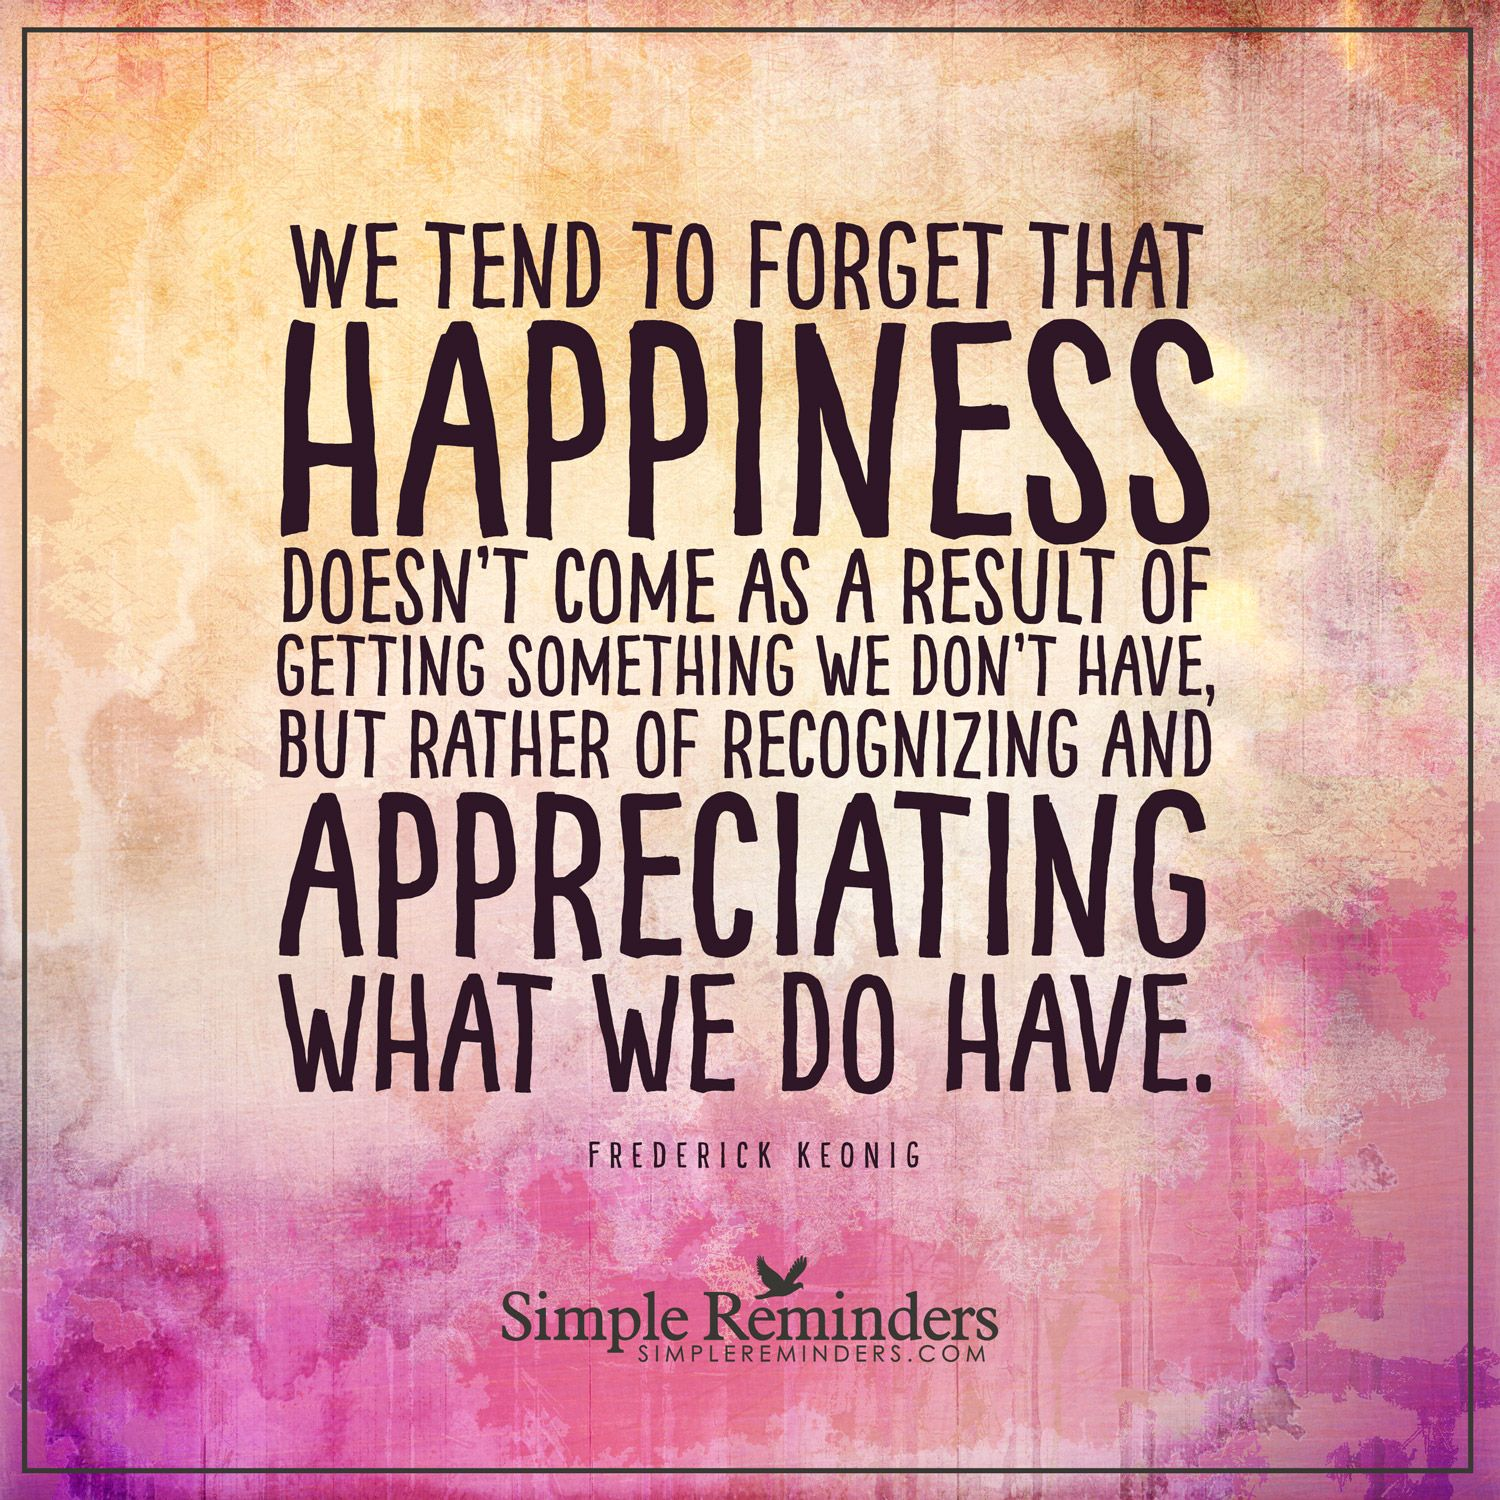 Appreciating what you have We tend to that